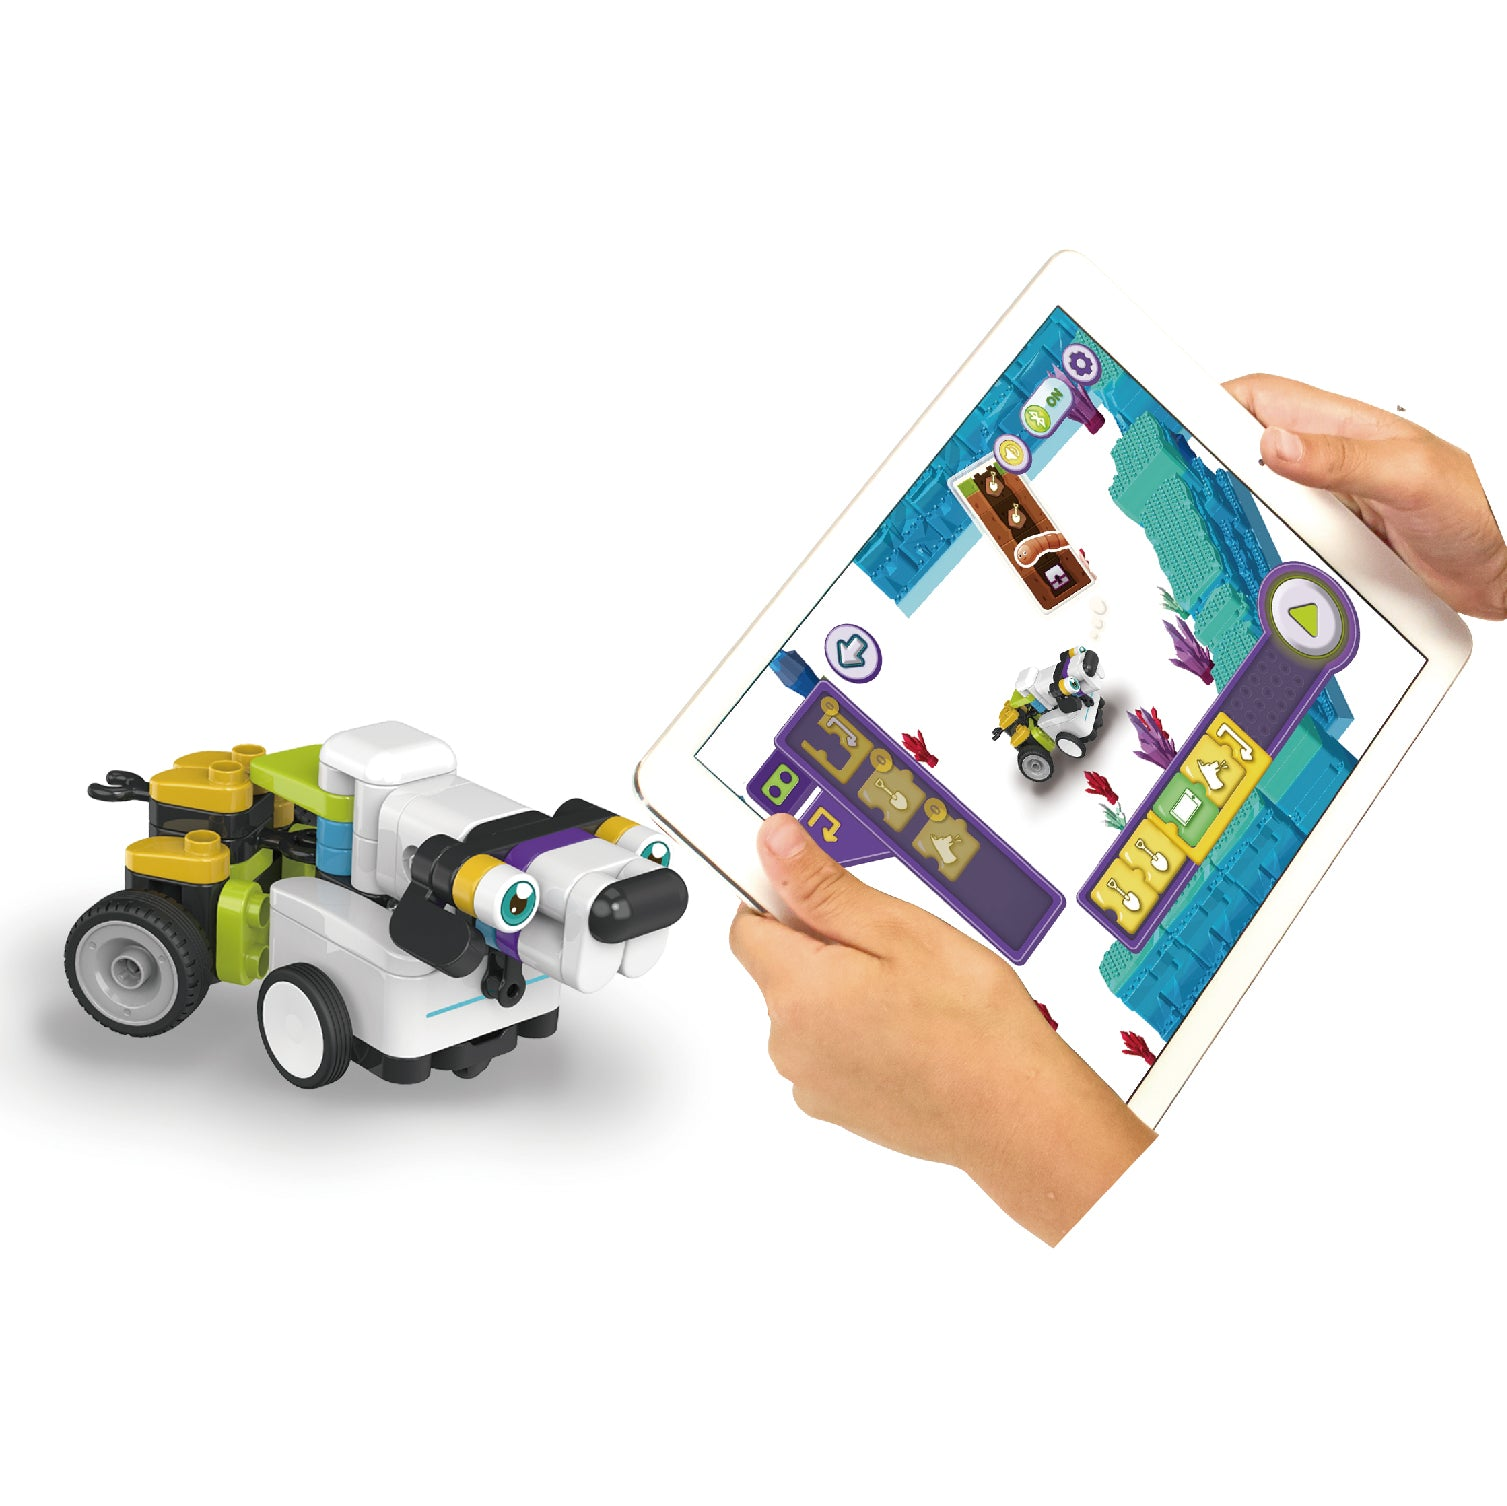 Botzees - Robotics, Programing and Augmented Reality!